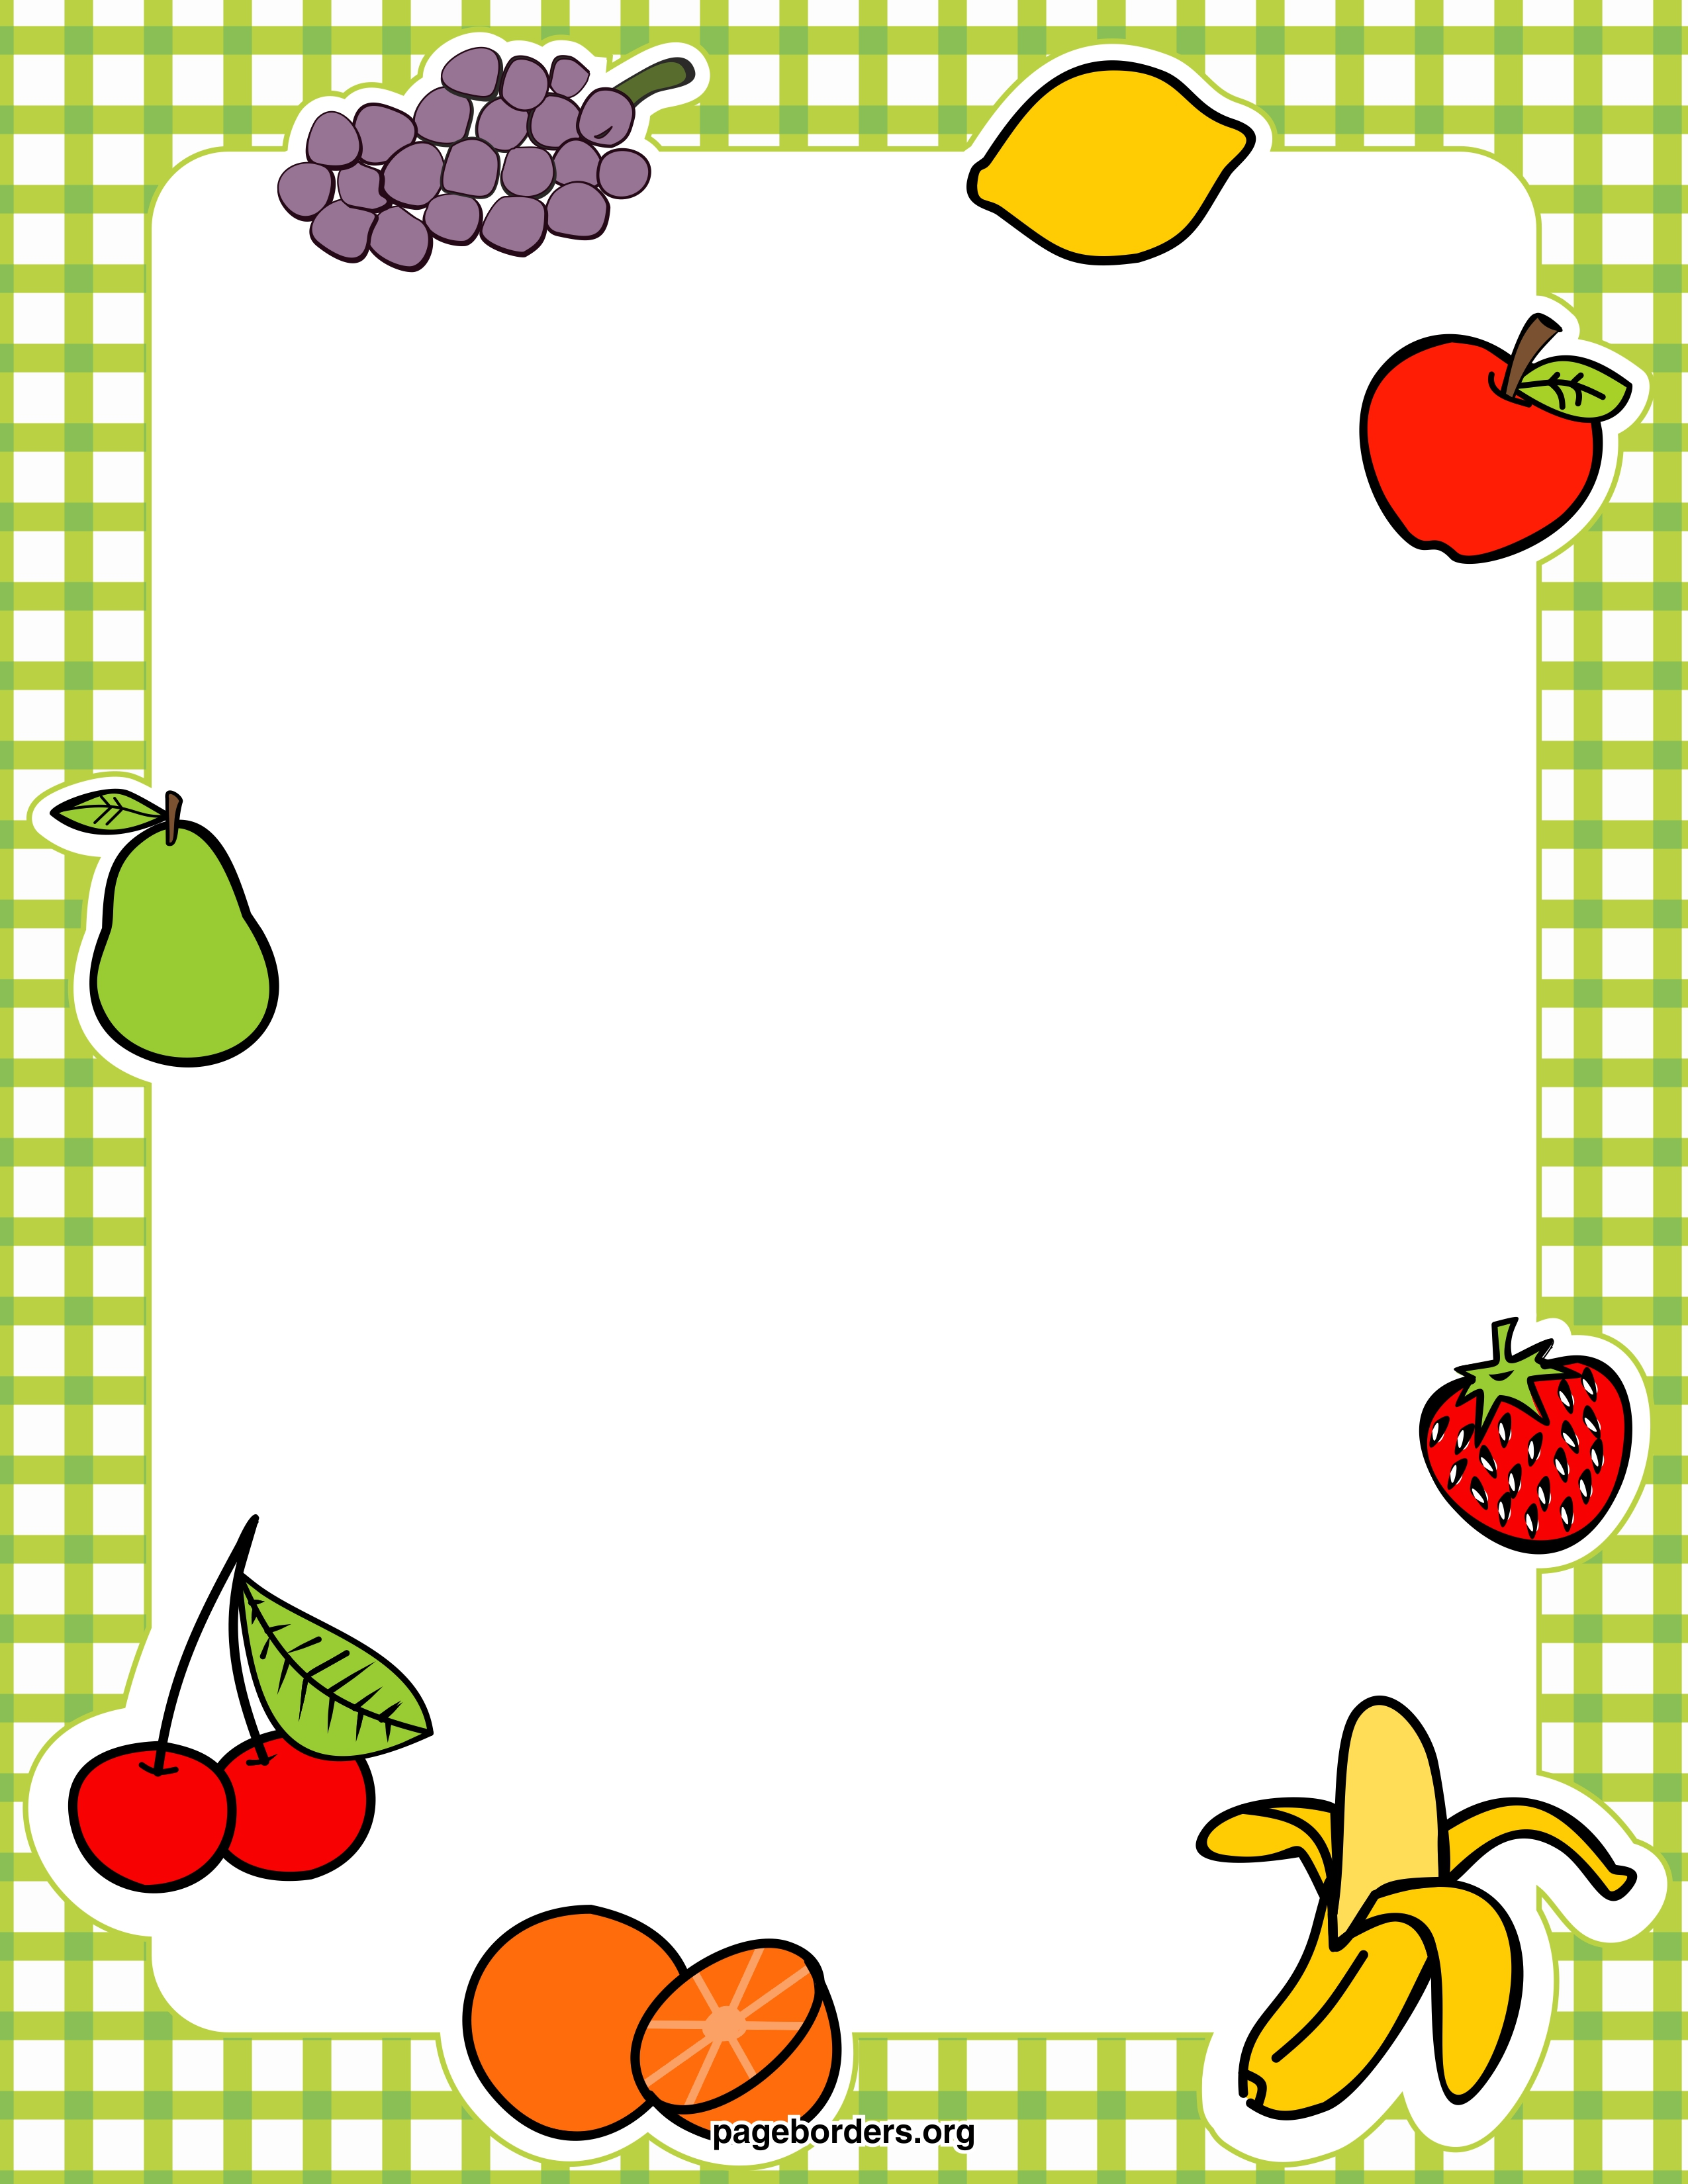 Food borders clipart clipart free download Free Food Border Cliparts, Download Free Clip Art, Free Clip Art on ... clipart free download